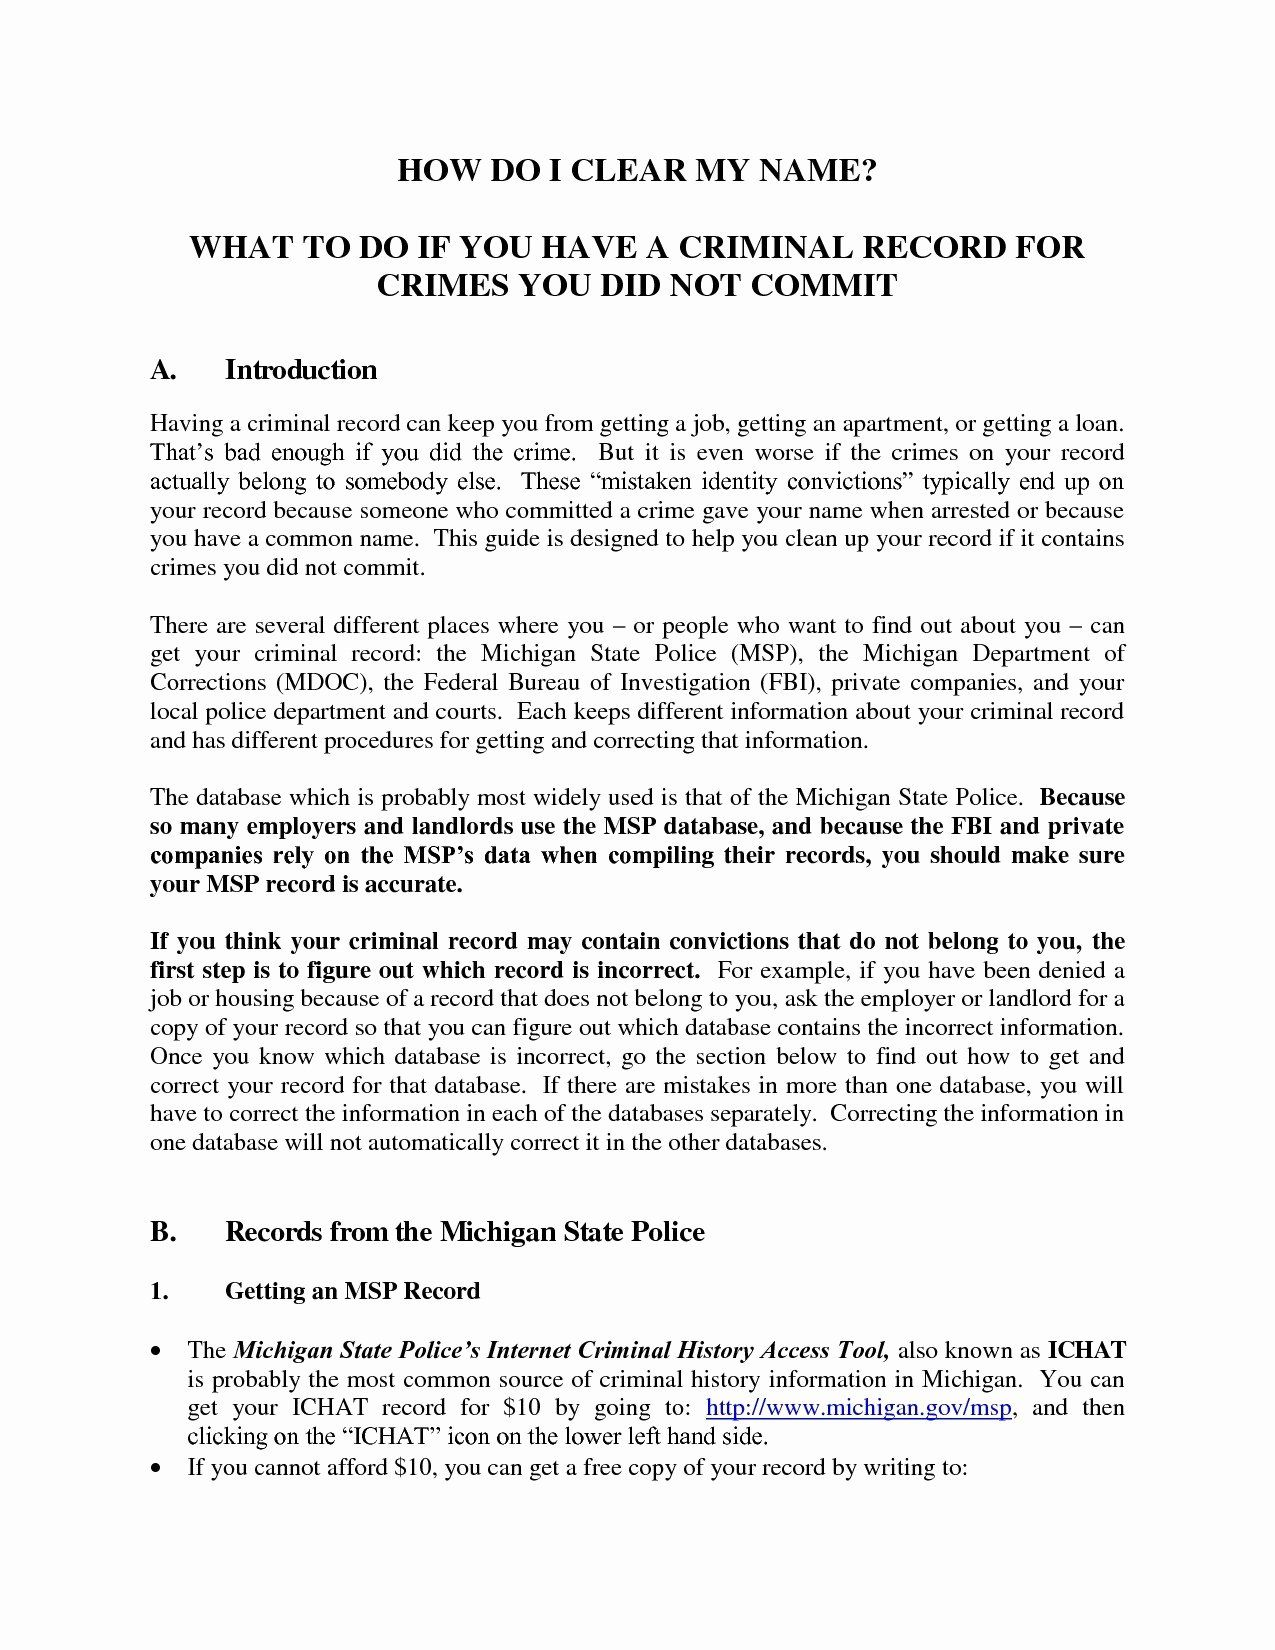 Criminal Background Check Consent Form Template In 2020 Criminal